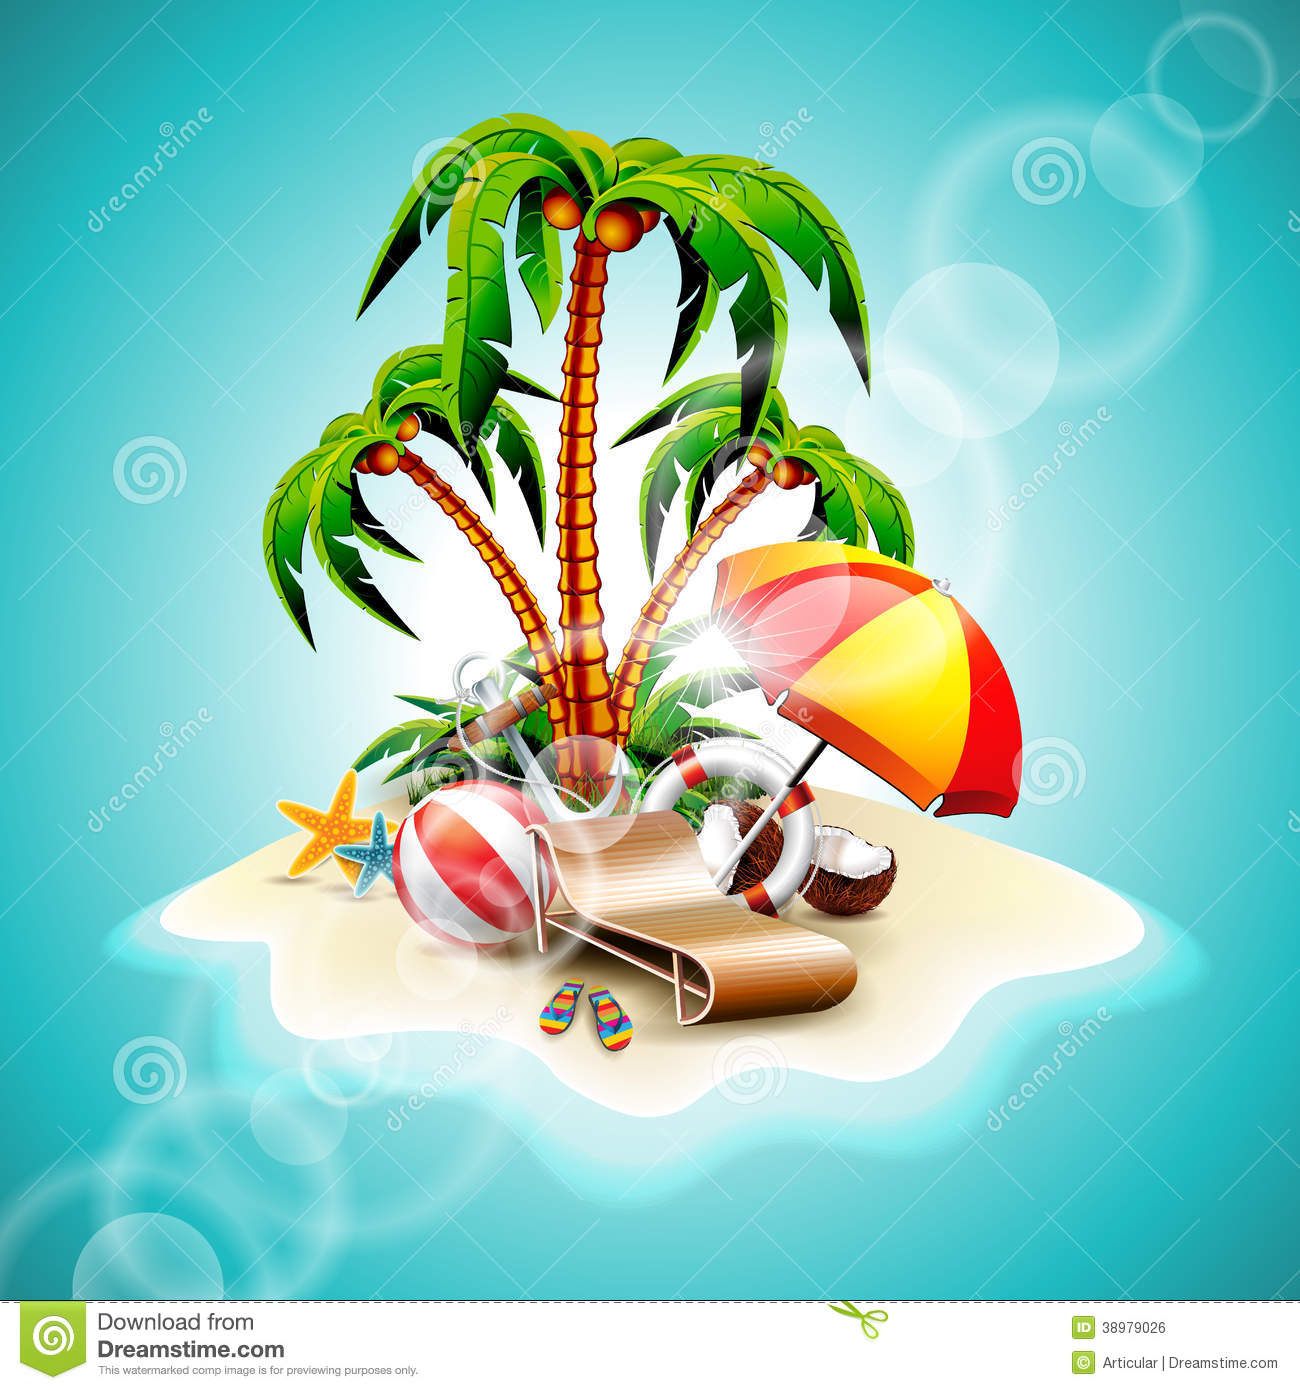 Vector Illustration On A Summer Holiday Theme Stock Vector.